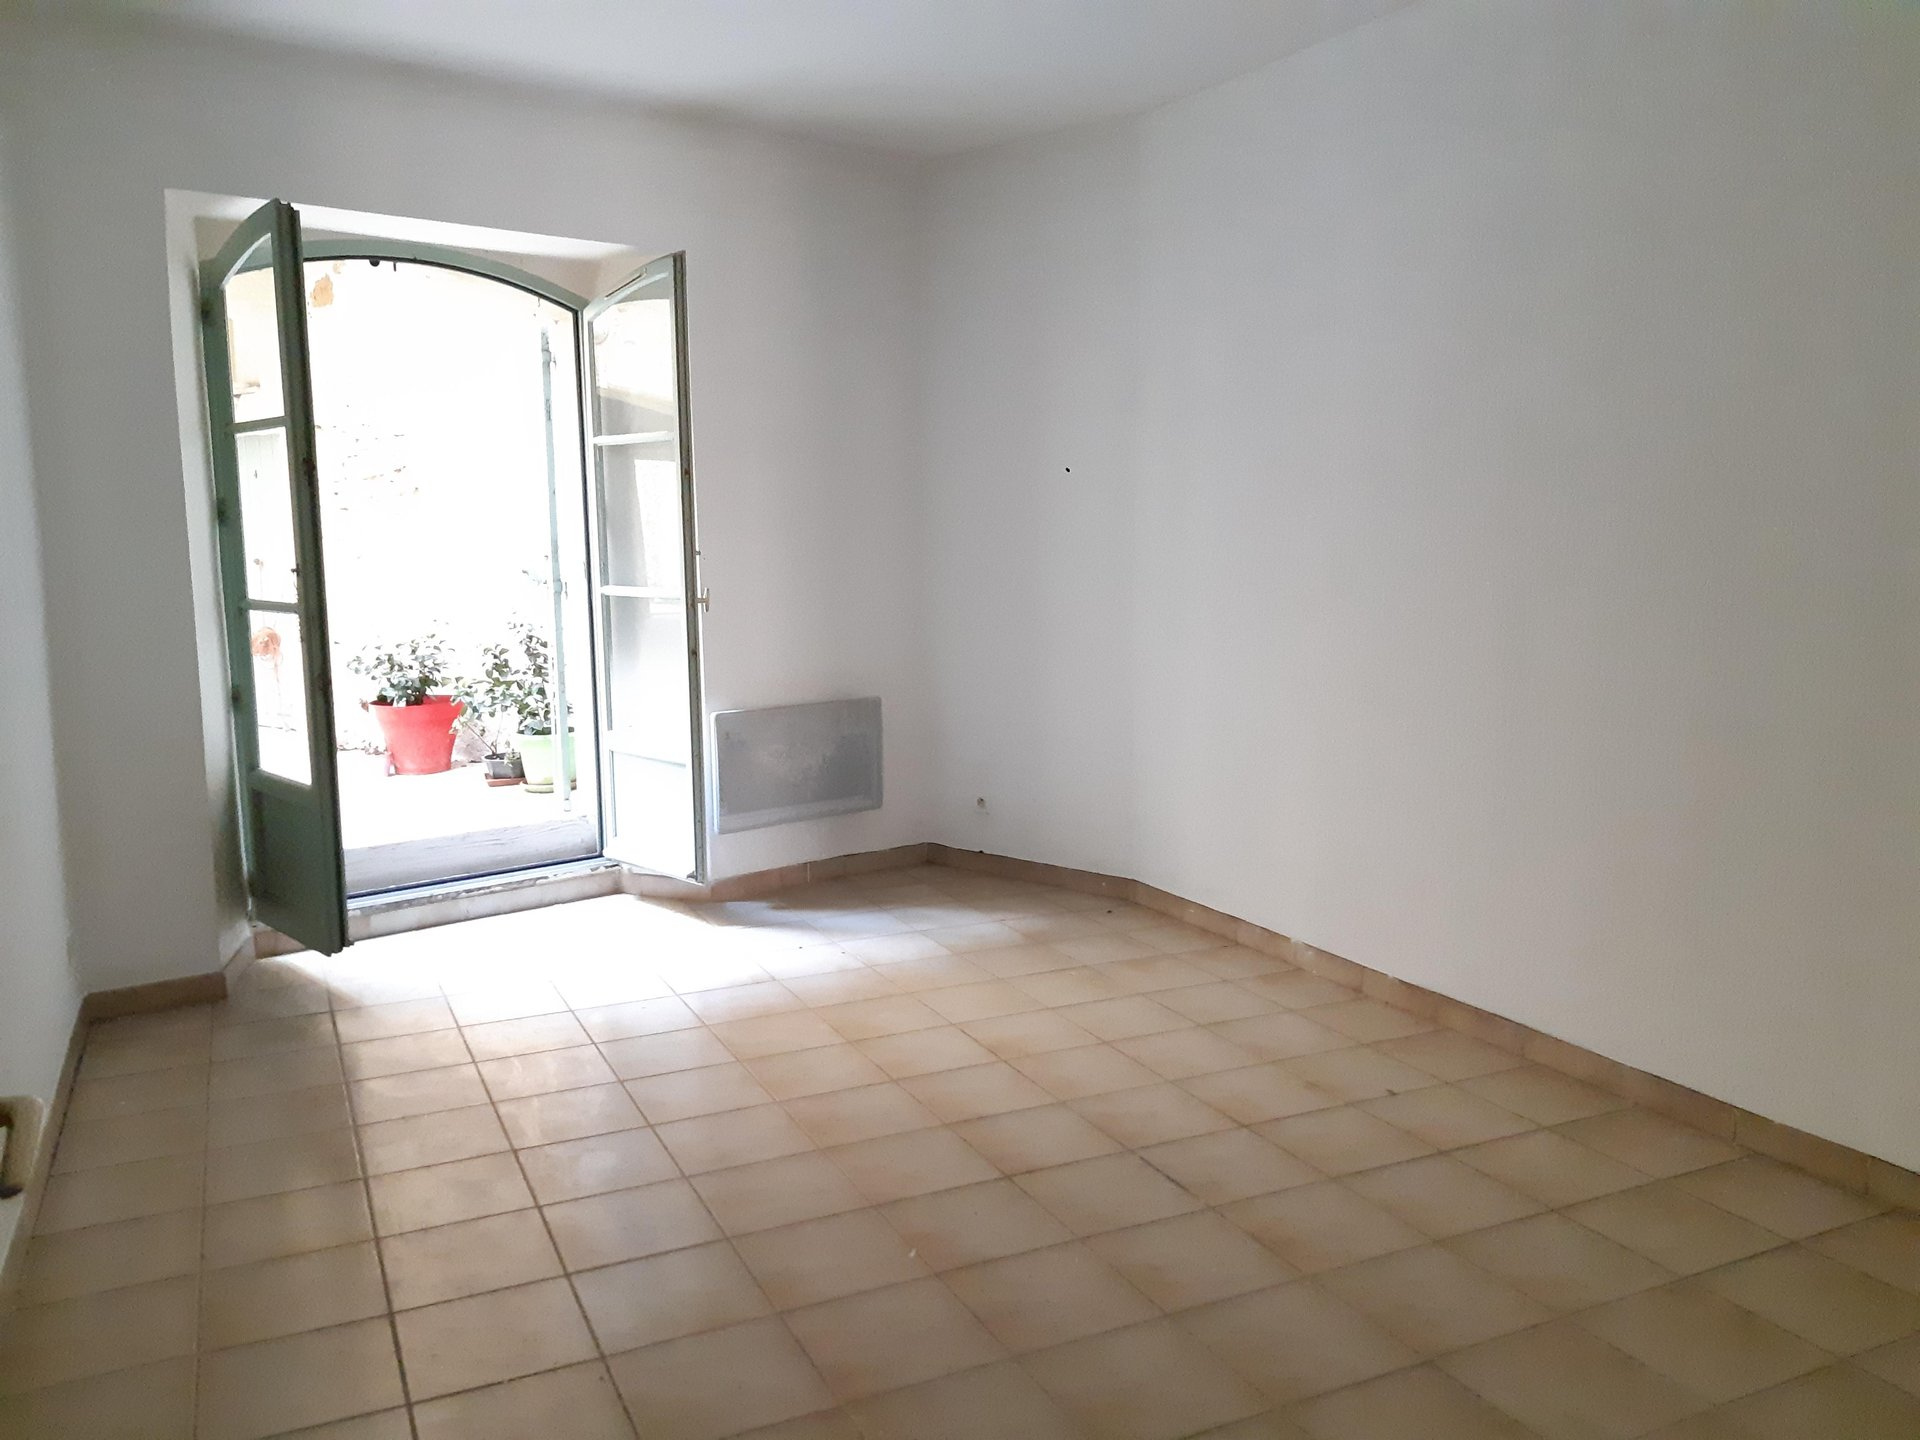 Location Appartement TARASCON surface habitable de 40 m²